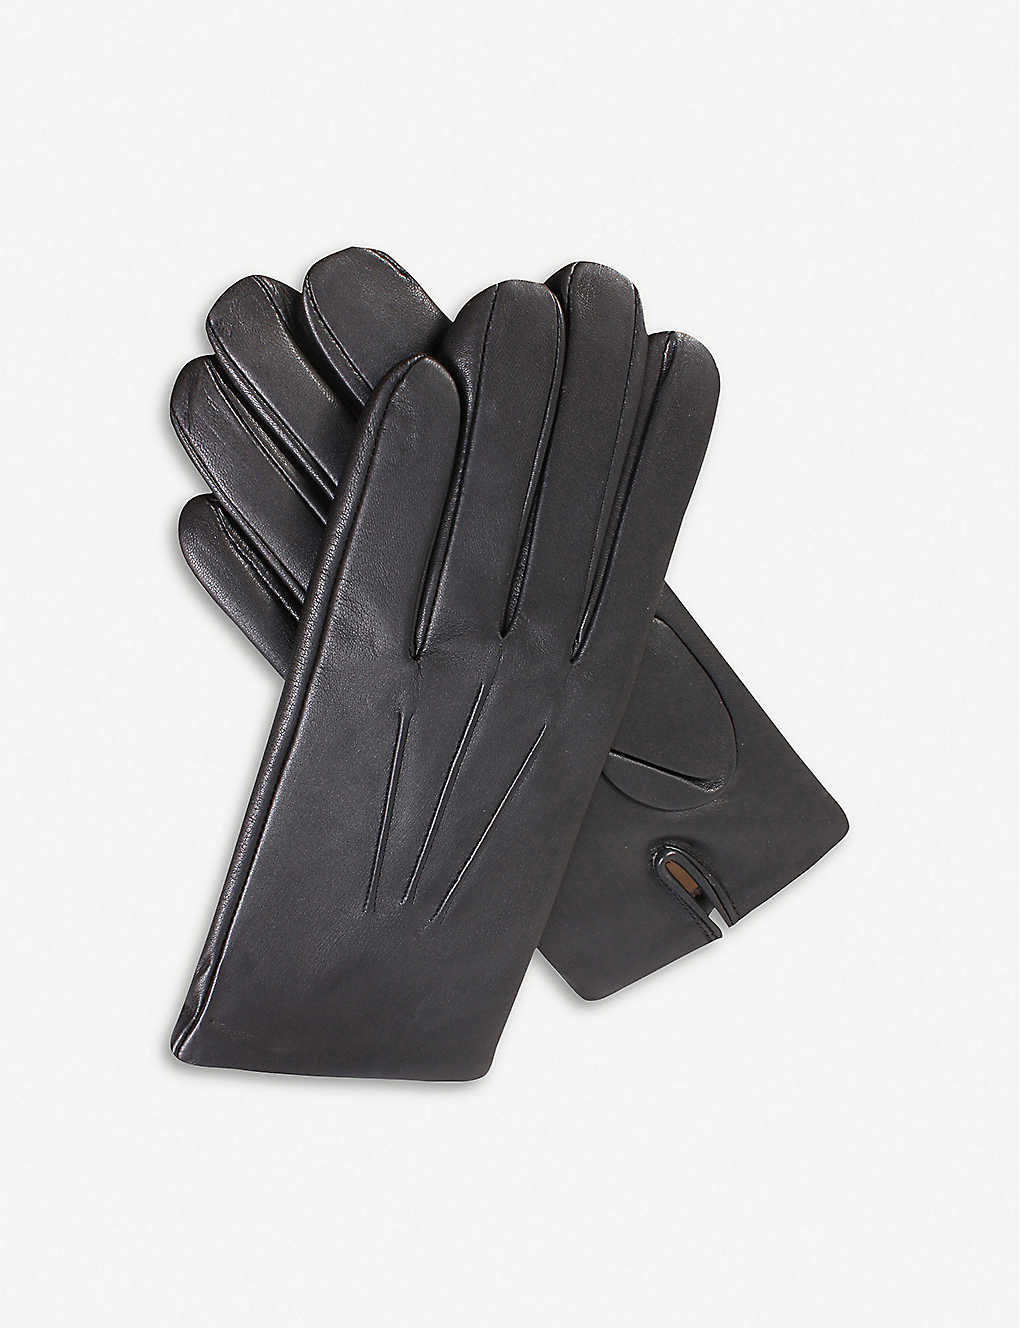 7997c0f55 DENTS - Cashmere-lined leather gloves | Selfridges.com